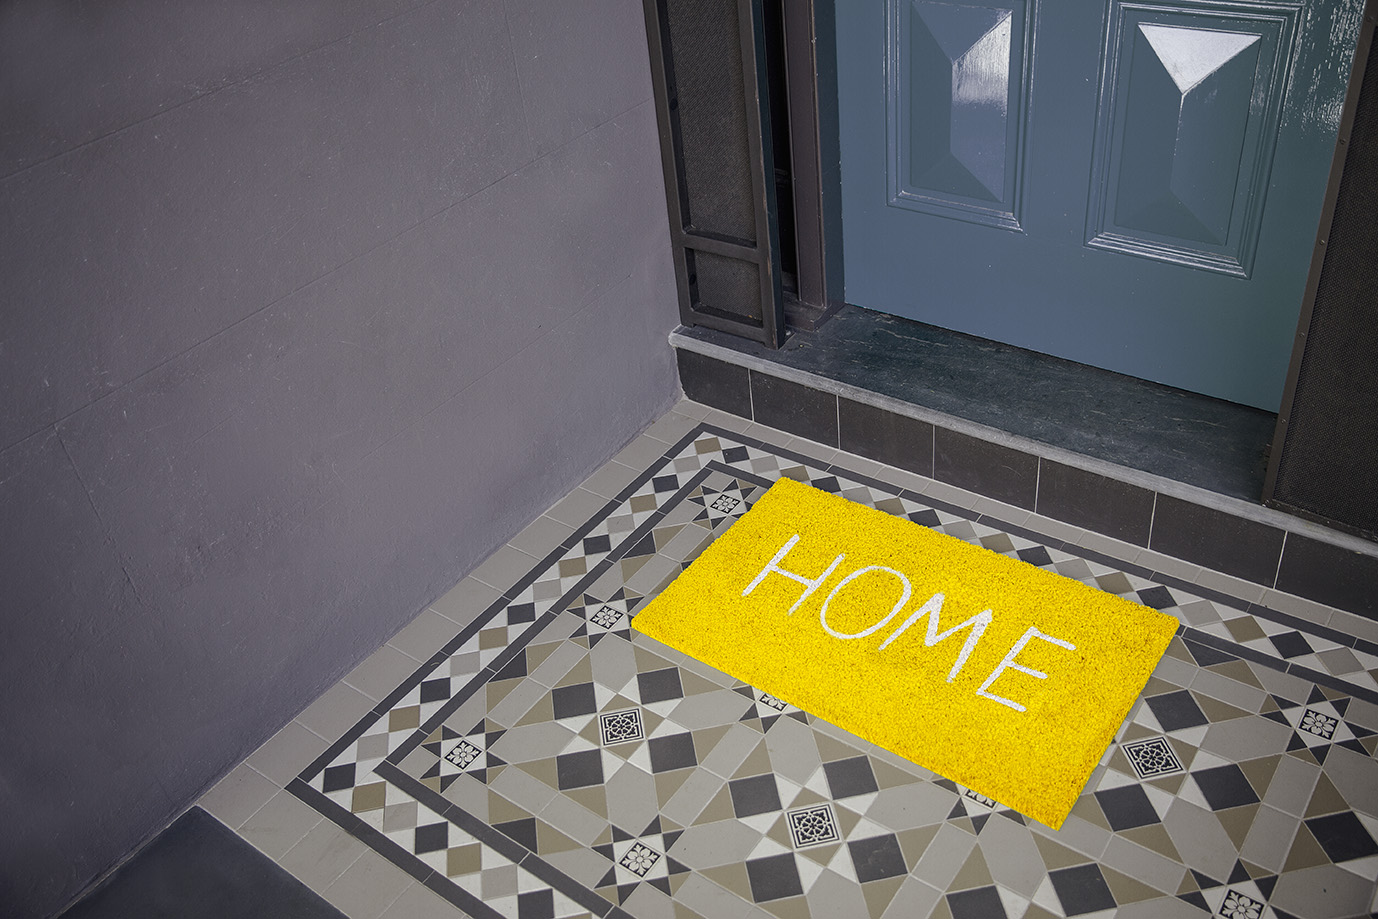 Doormat image (Home) - Ray White_Know How - Landscape - Low res.jpg